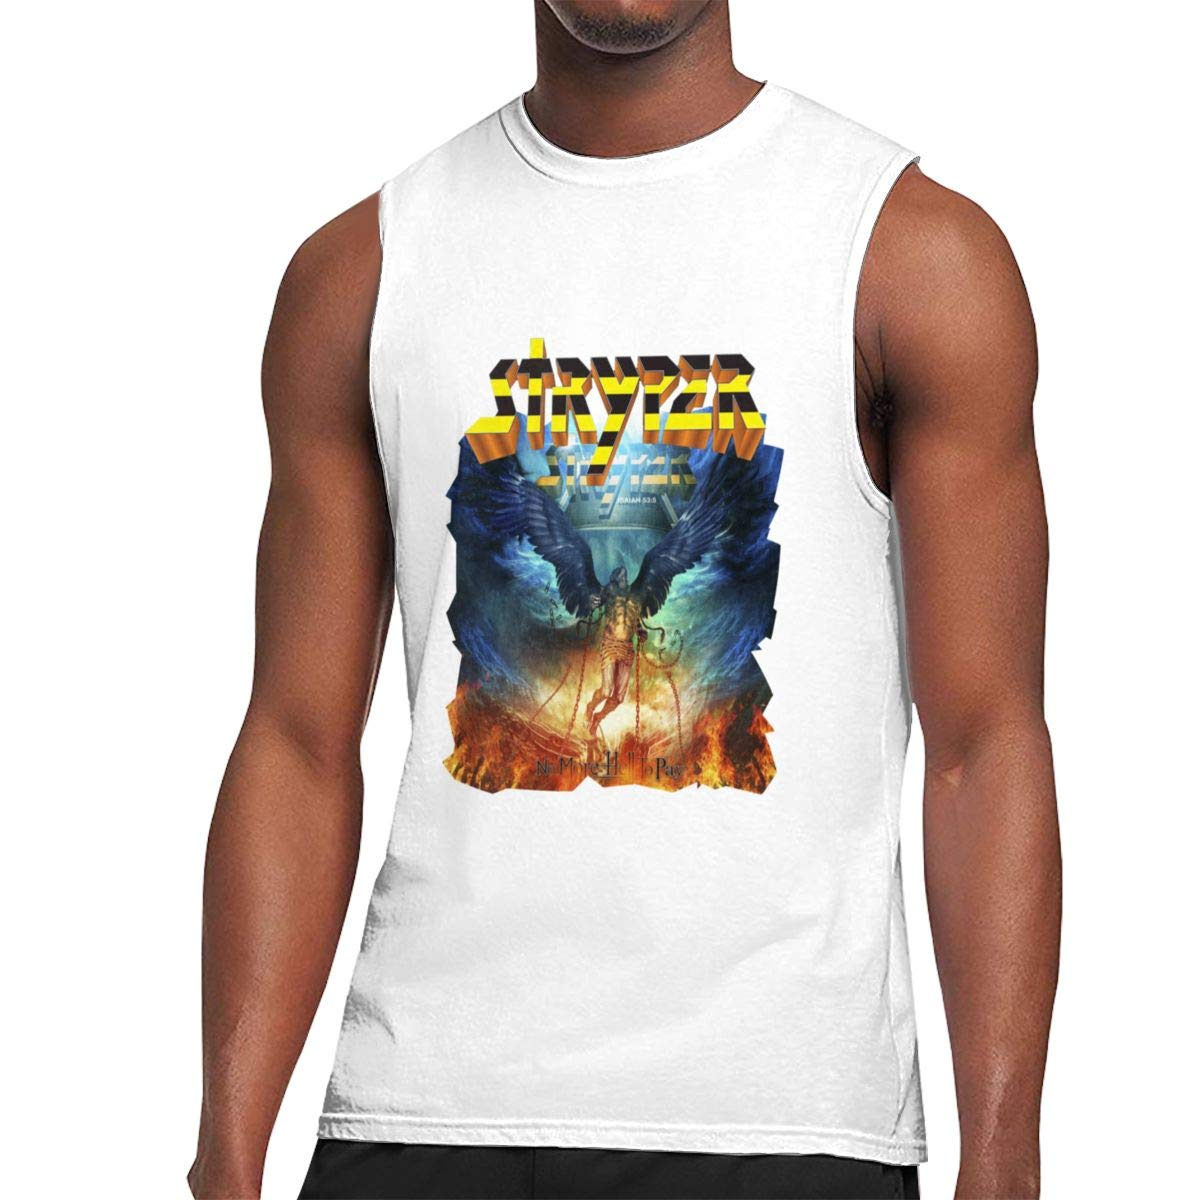 Seuriamin Stryper No More Hell To Pay S Humor Athletic Sleeveless Muscle Short Sleeve T Sh